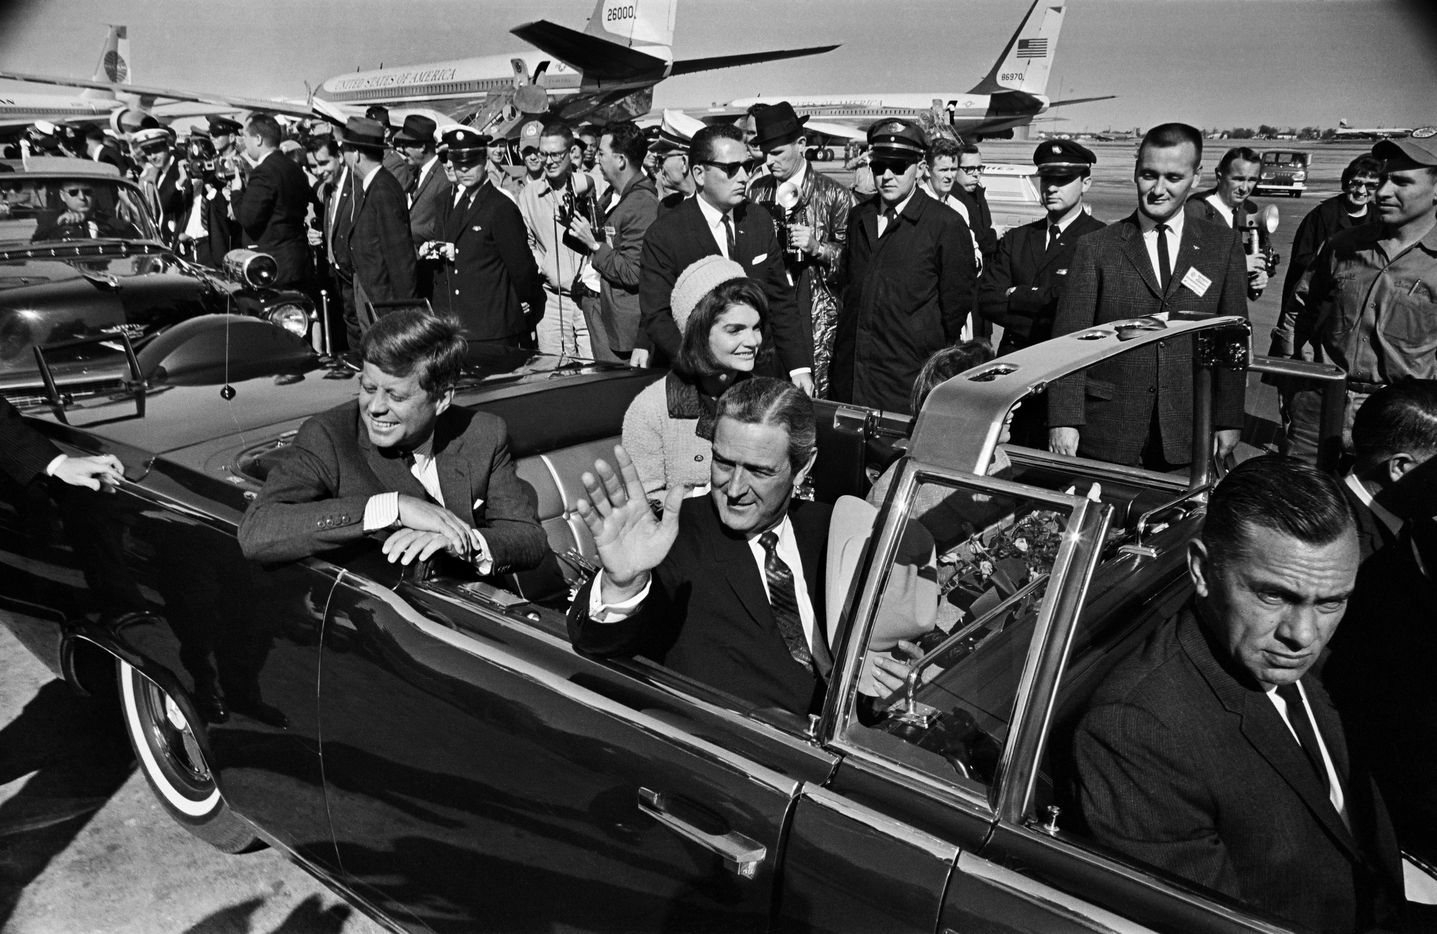 President John F. Kennedy and Jacqueline Kennedy begin the motorcade from Love Field to downtown Dallas on Nov. 22, 1963. Texas Gov. John Connally is waving. (Tom Dillard/The Dallas Morning News)